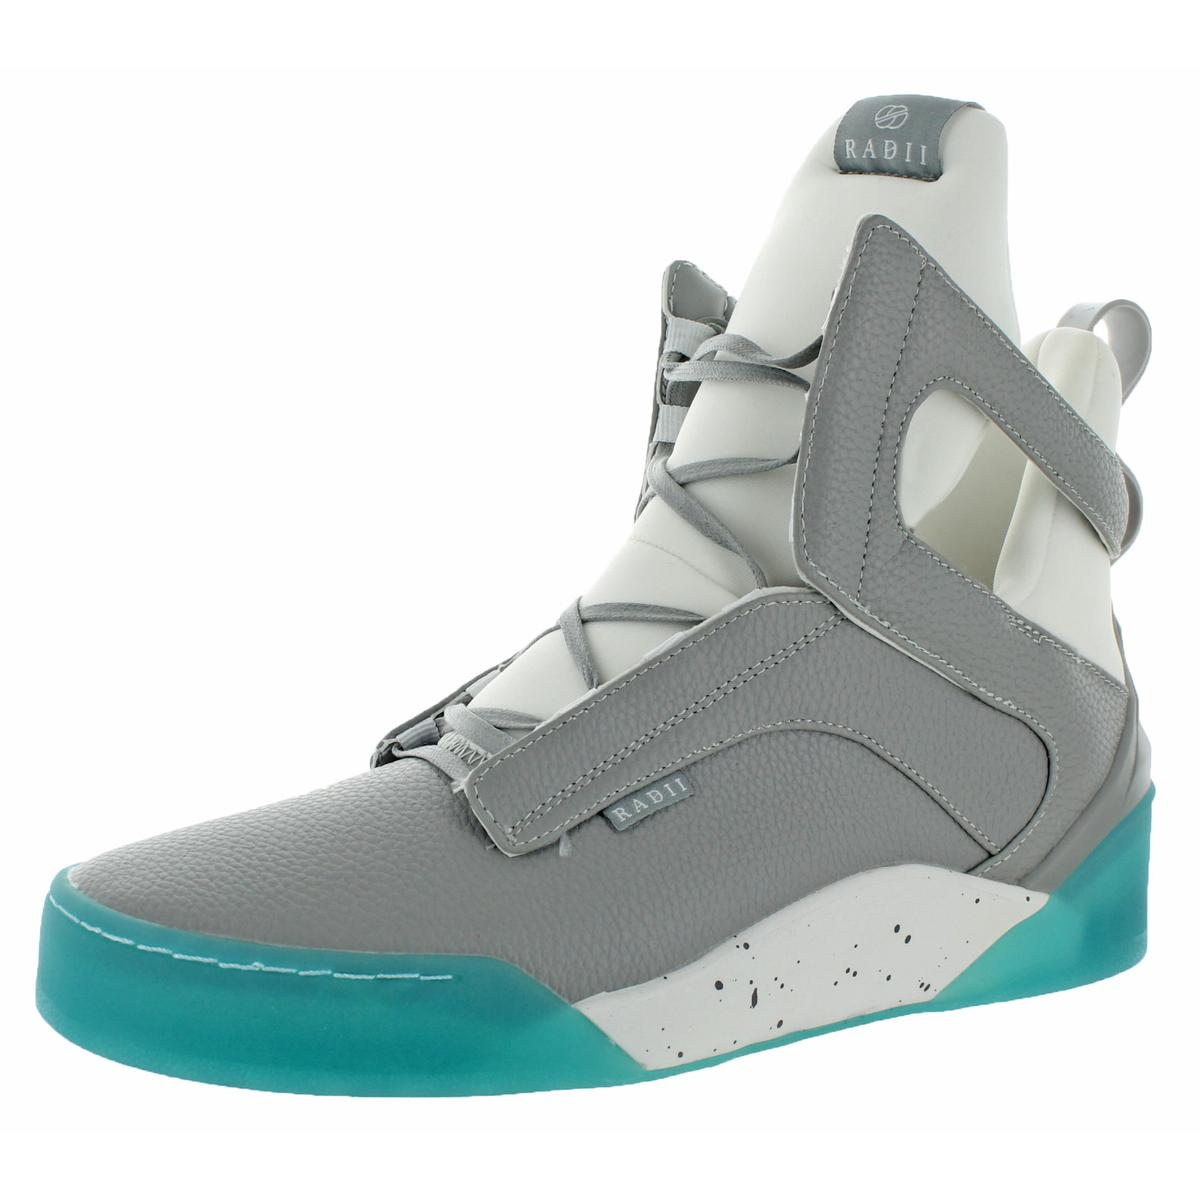 Radii Mens Prism Gray High Top Fashion Sneakers Shoes 11 Medium (D) BHFO 2726